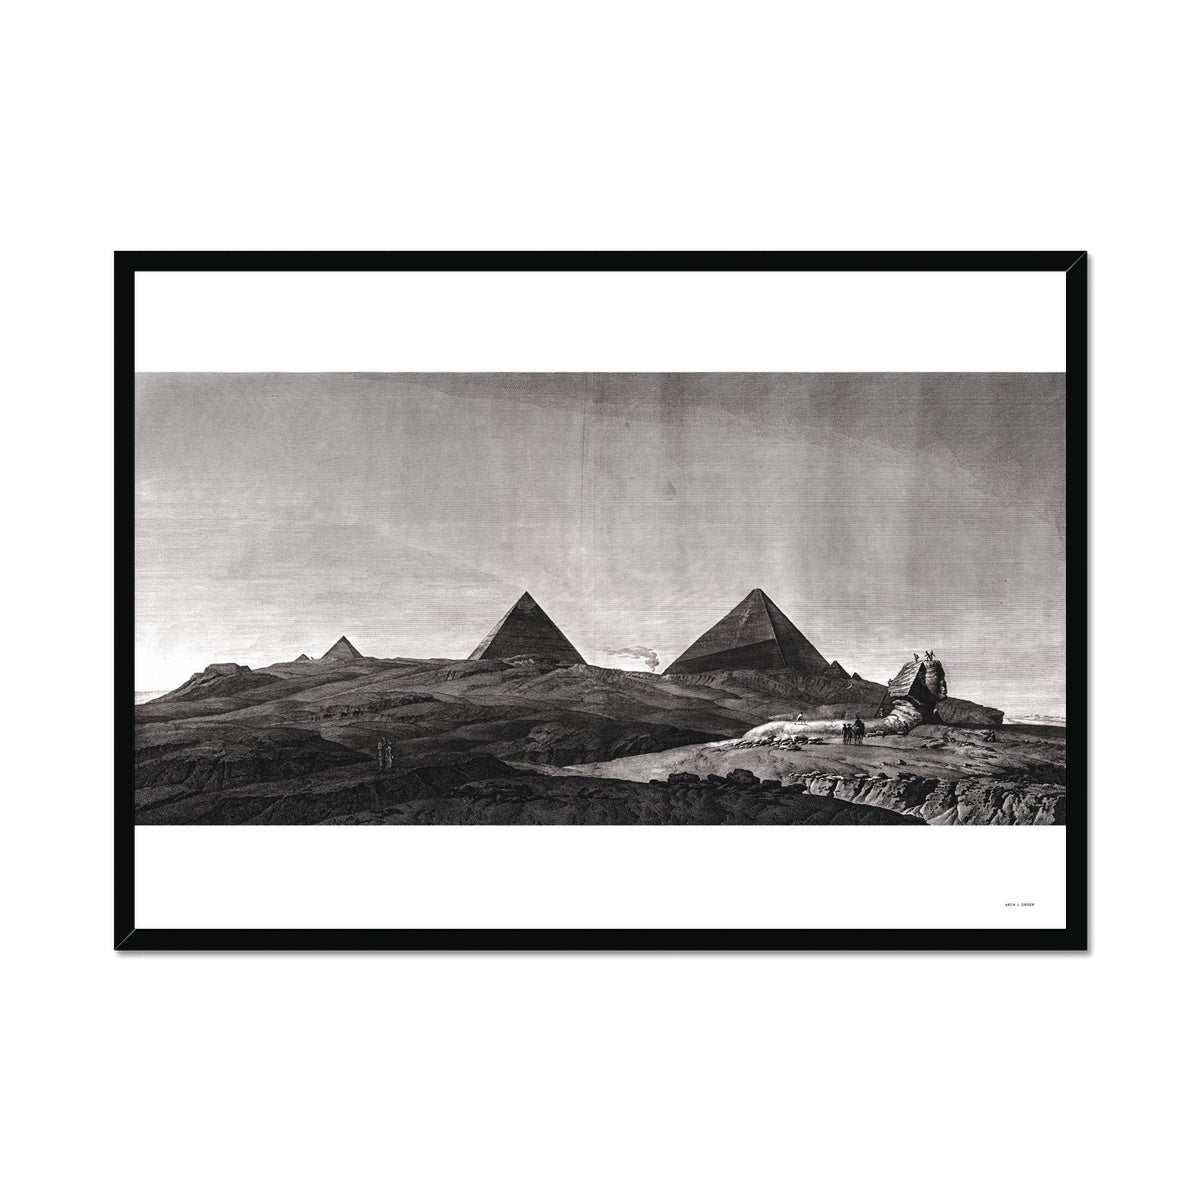 View of the Pyramids of Giza and Sphinx - Memphis Egypt -  Framed Print